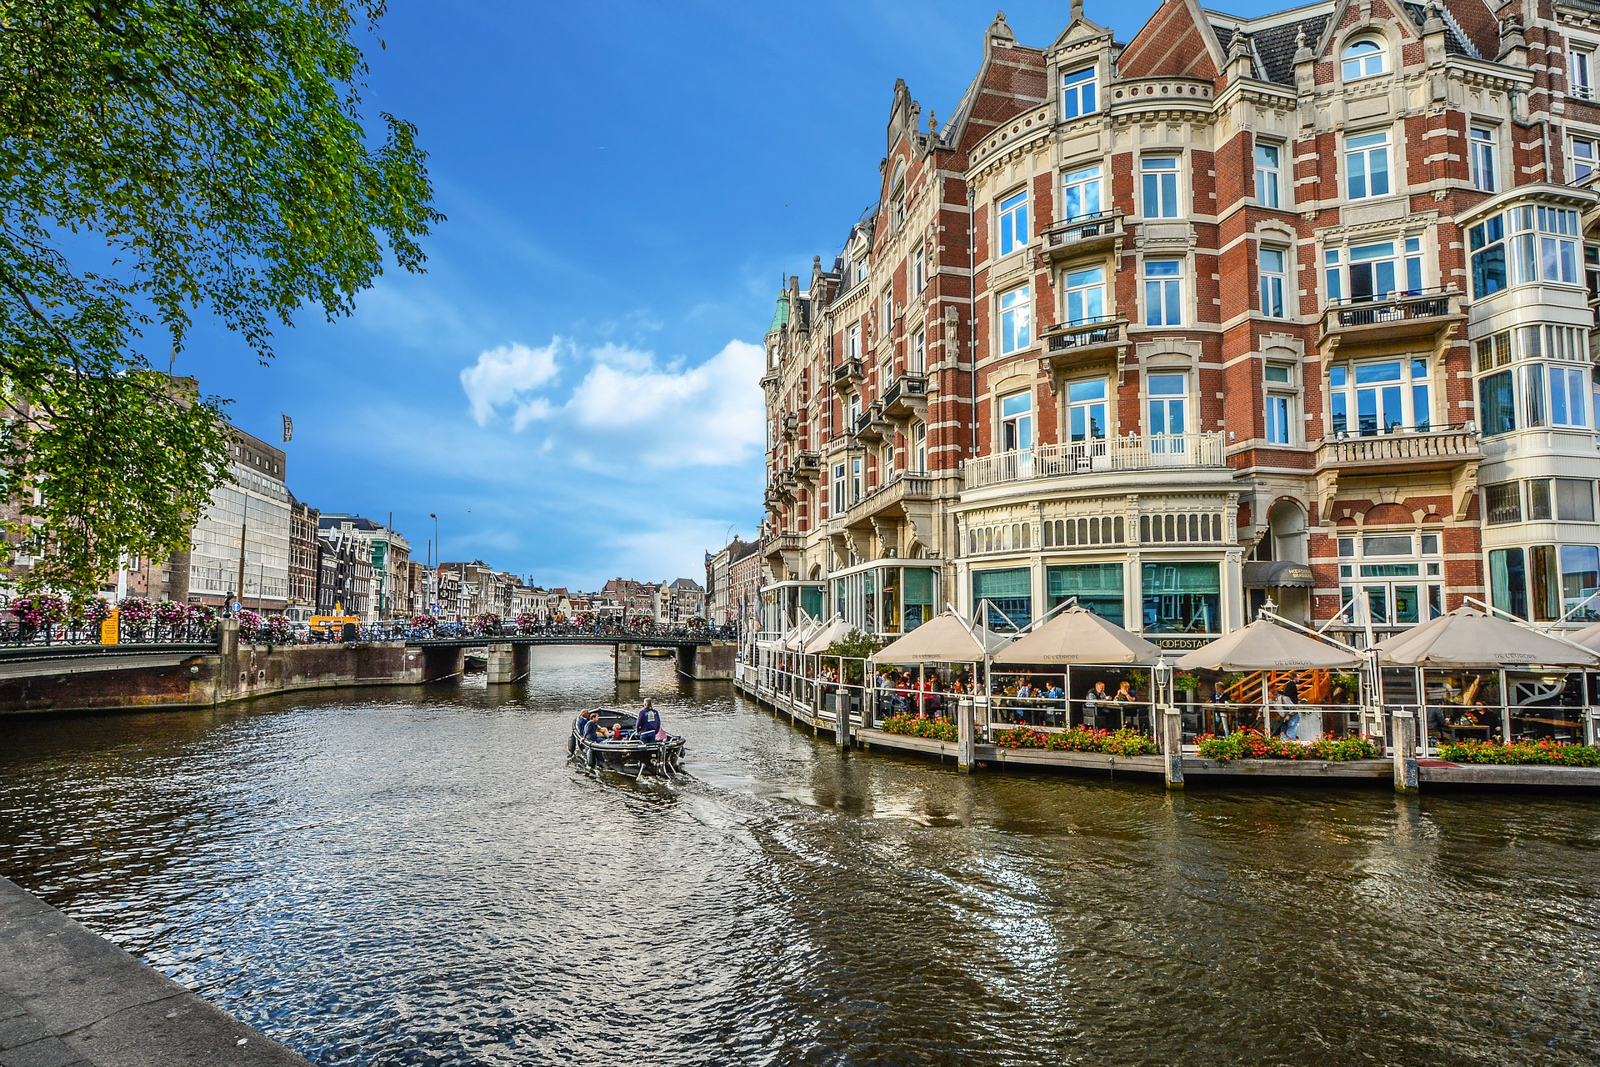 Places to visit in Amsterdam Old Town like the Amsterdam Christmas Market and other Amsterdam tourist attractions on an Amsterdam walking tour.